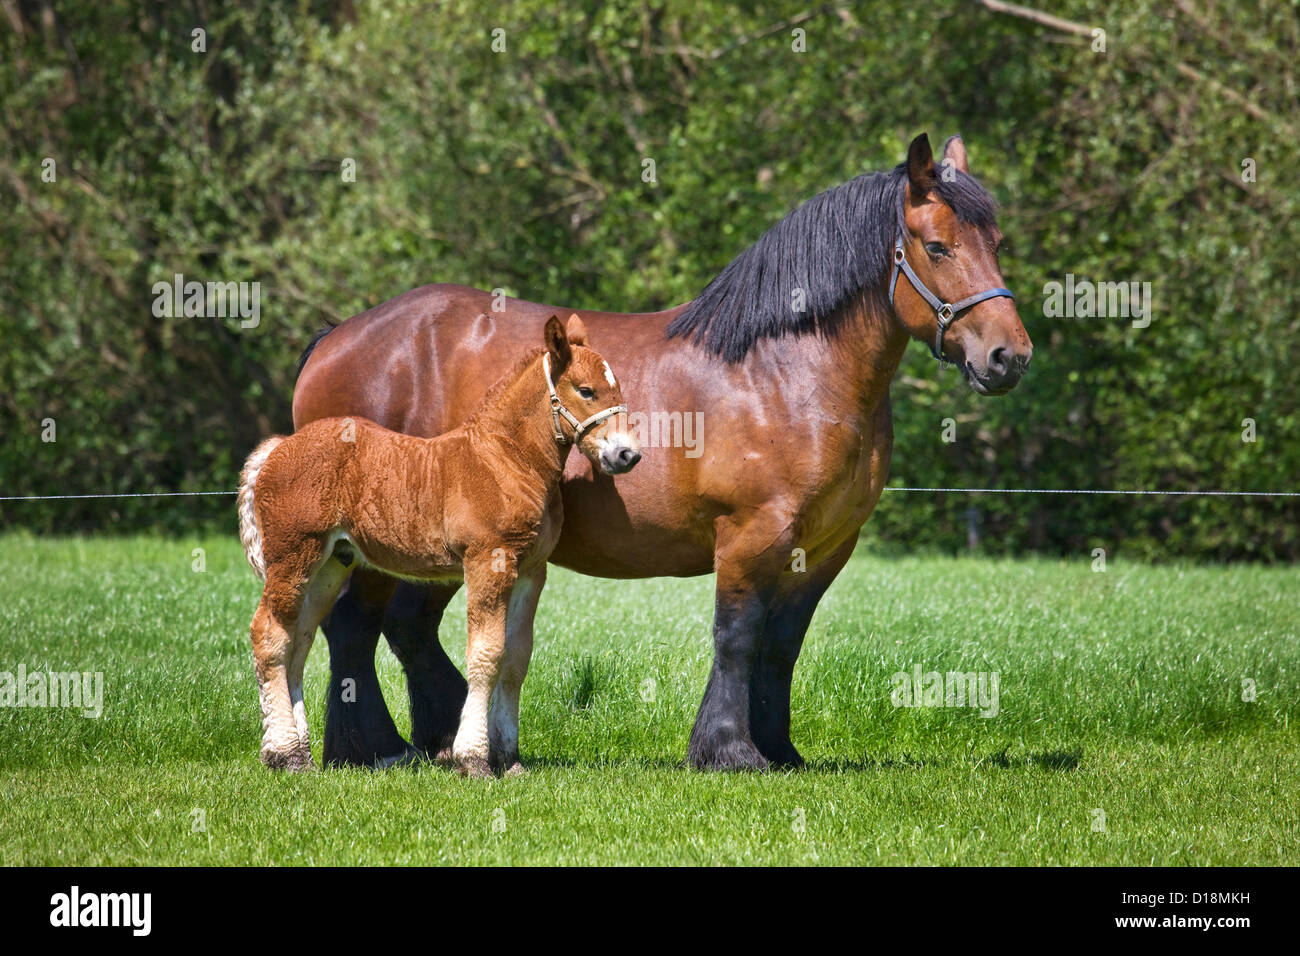 Foal and mare Belgian draft horse / Belgian Heavy Horse / Brabançon / Brabant, draft horse breed in Belgium - Stock Image